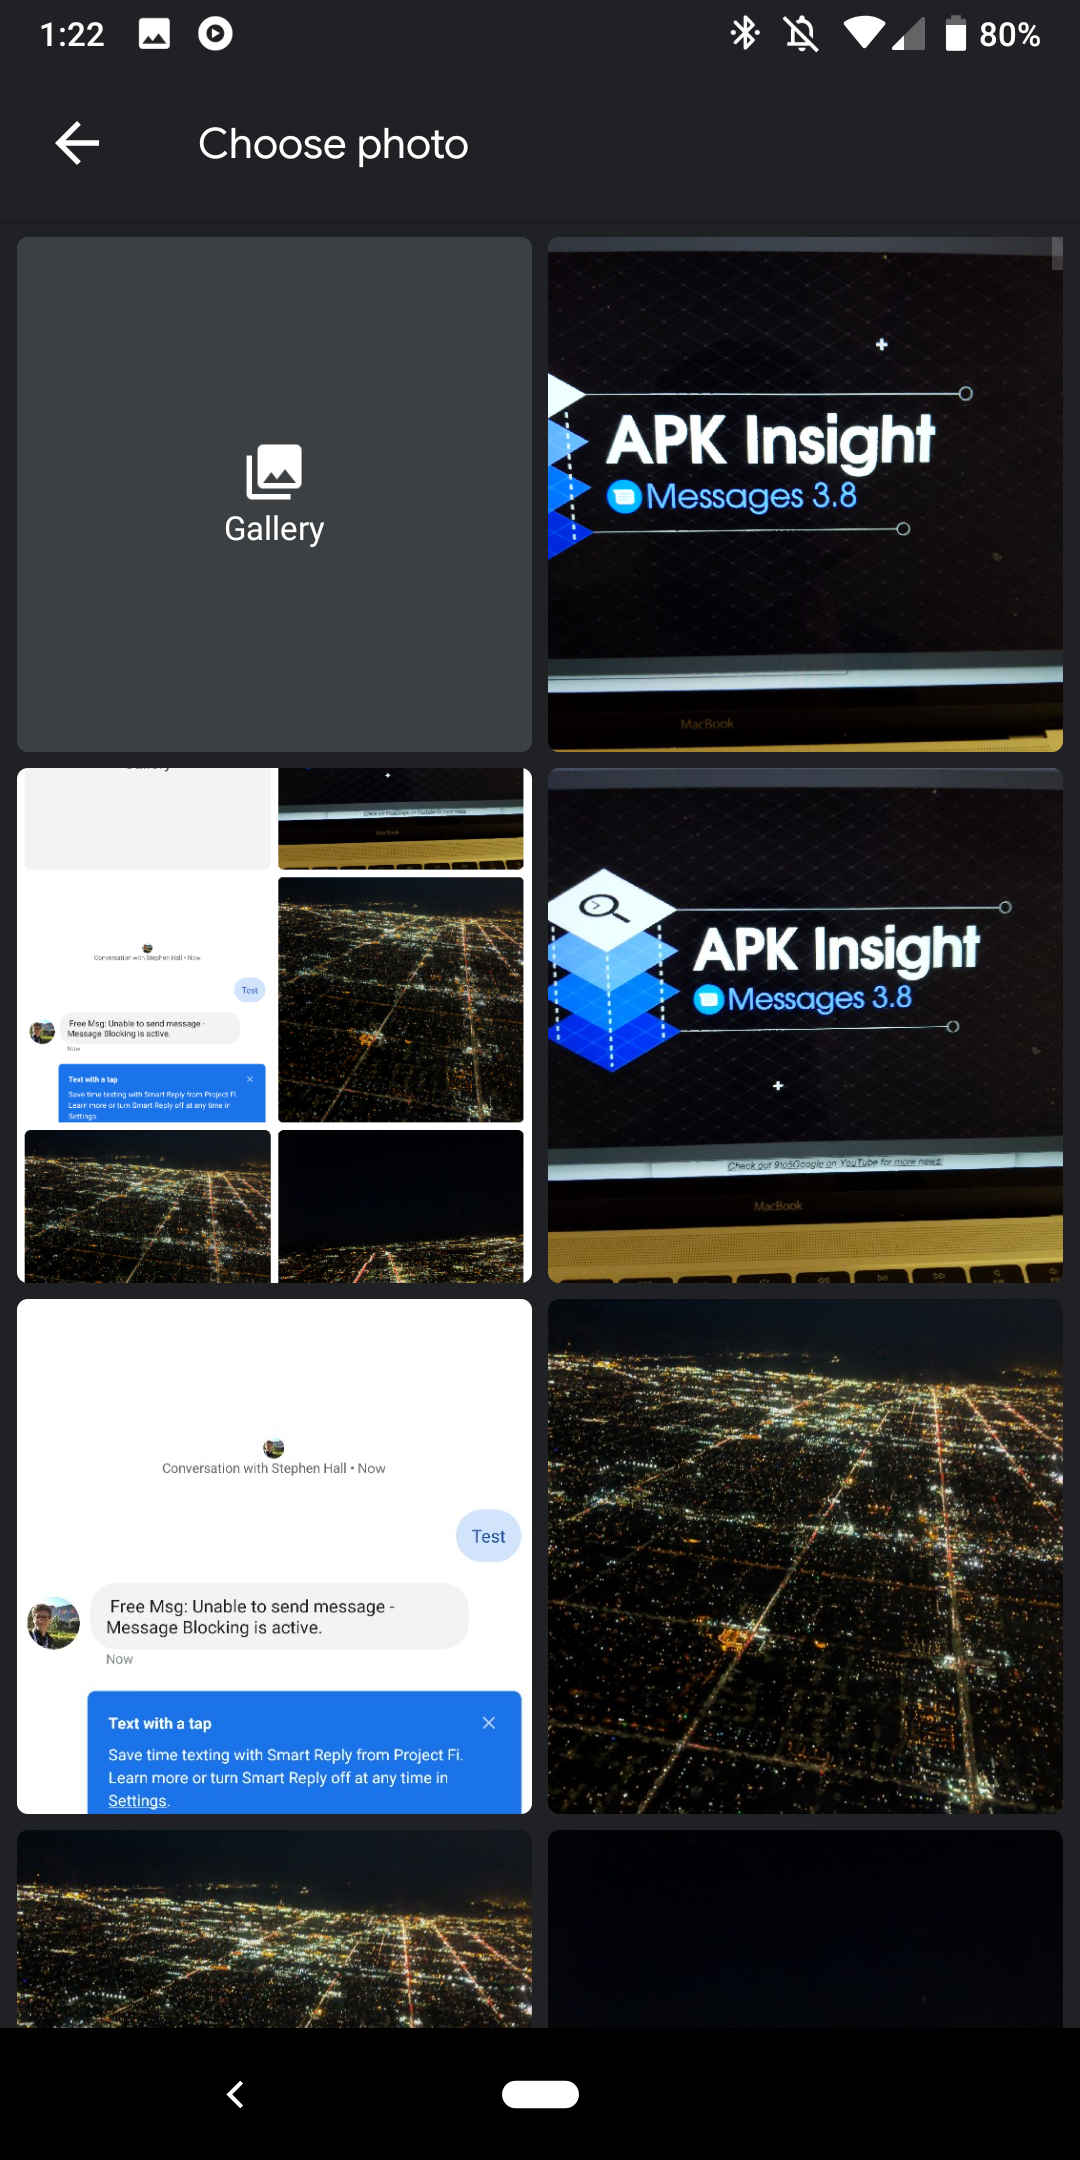 Messages 3 8 features revamped camera and gallery UI [APK Insight